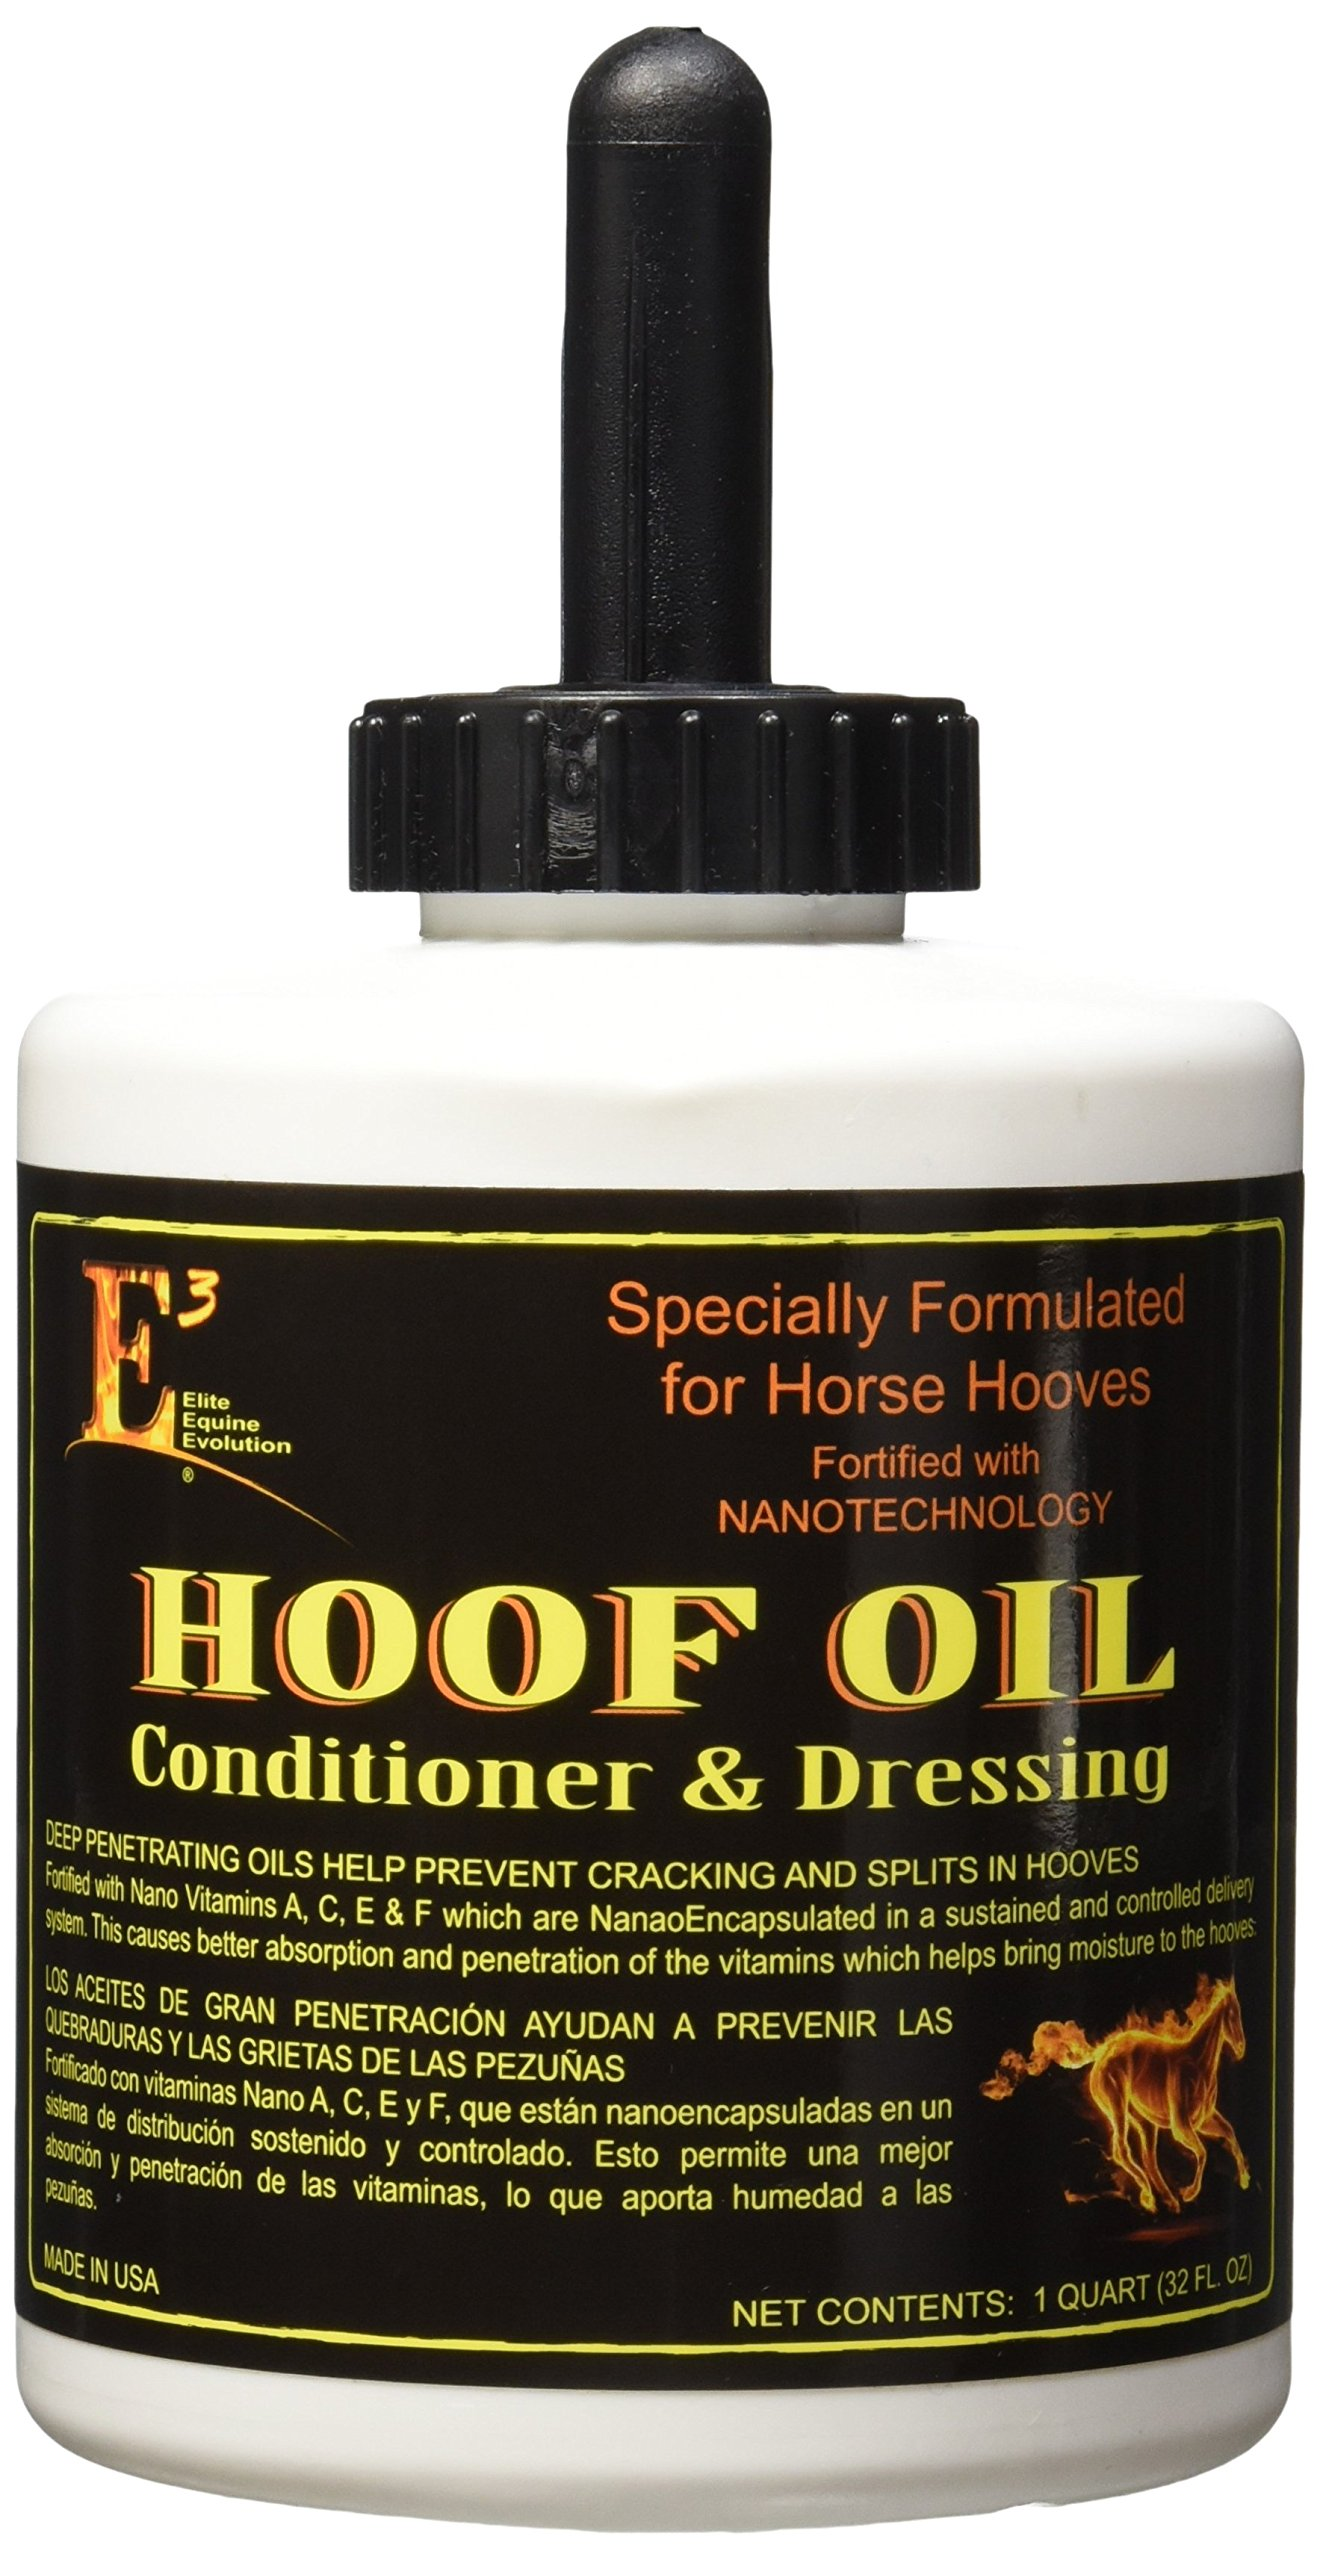 E3 Elite Grooming Products Equine Evolution Hoof Oil for Pets by E3 Elite Grooming Products